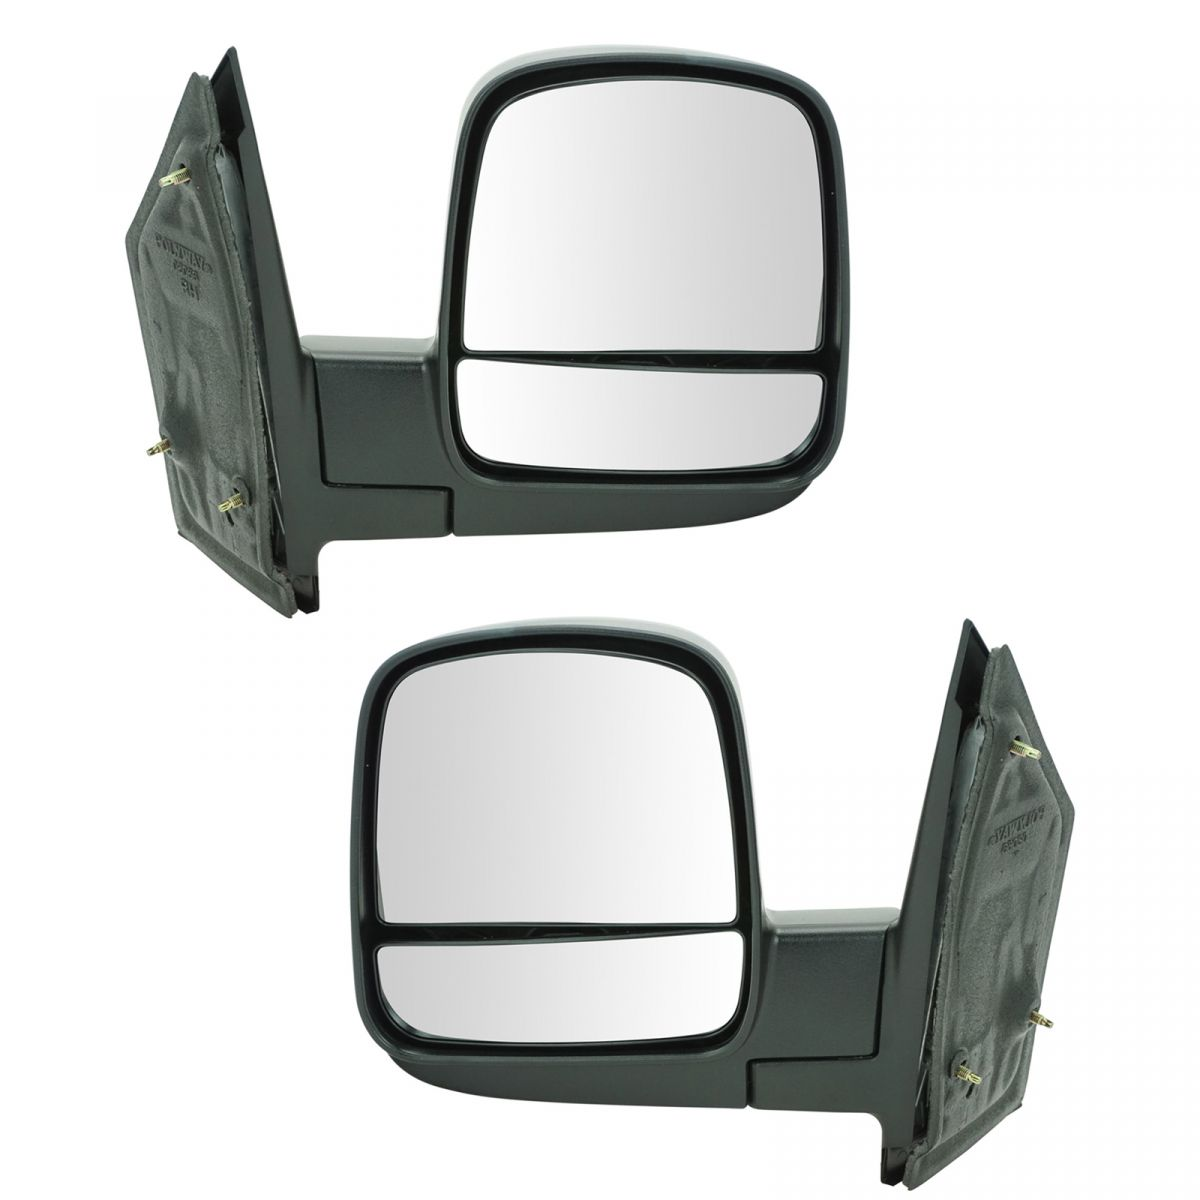 Black Manual Side View Mirrors Left /& Right Pair Set of 2 For 02-06 Altima